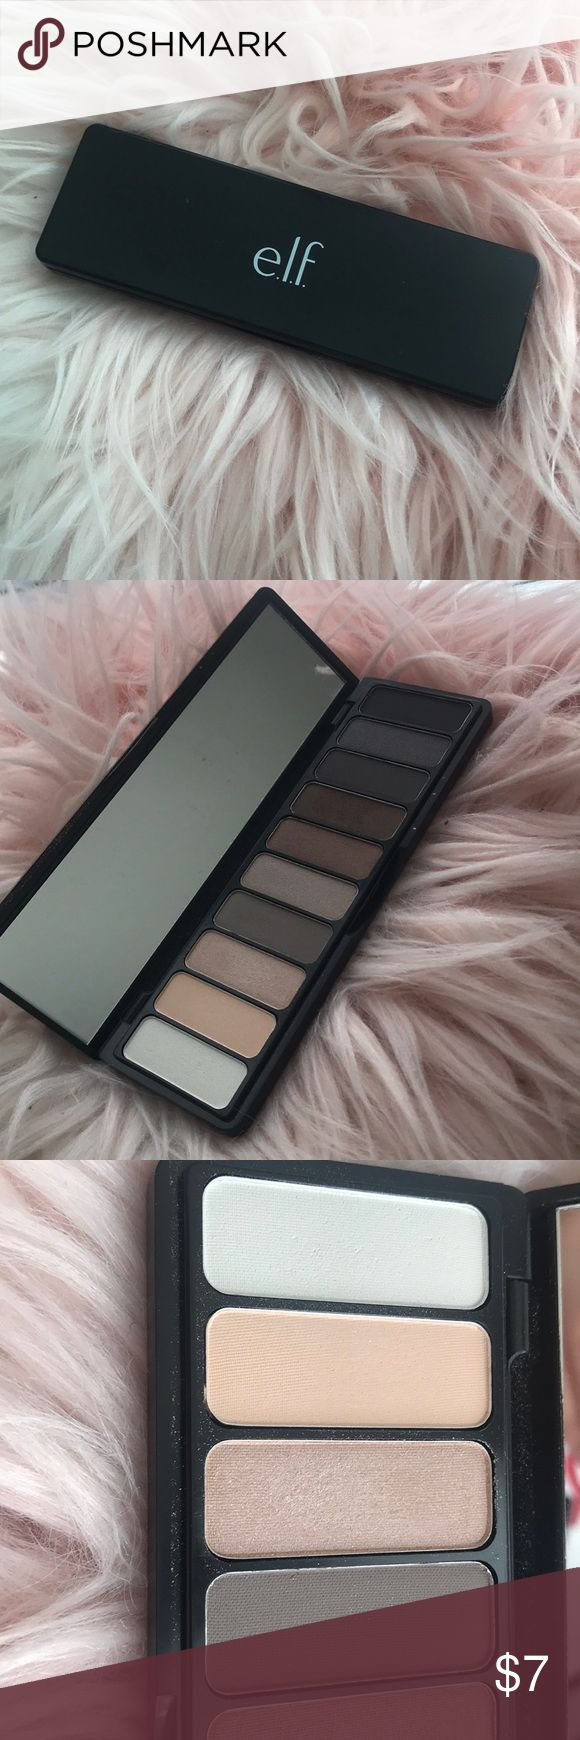 Elf Eyeshadow Palette NEW, two shades have been swatched. ELF Makeup Eyeshadow